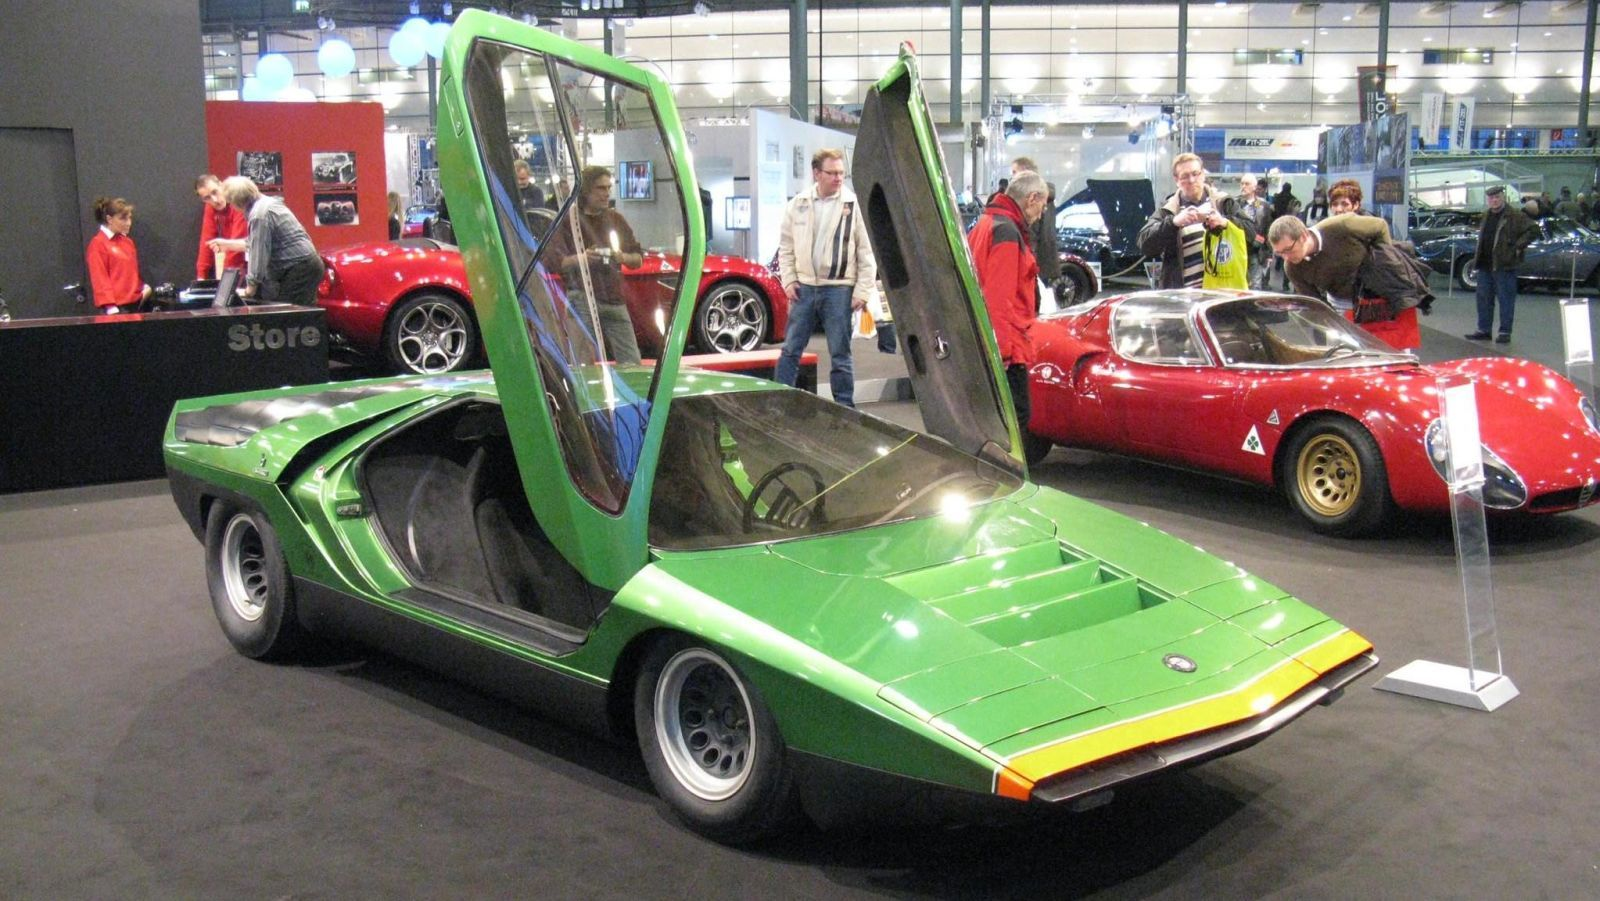 The Best Looking Car Shape Is The Wedge In 2020 Concept Cars Classic Cars Alfa Romeo